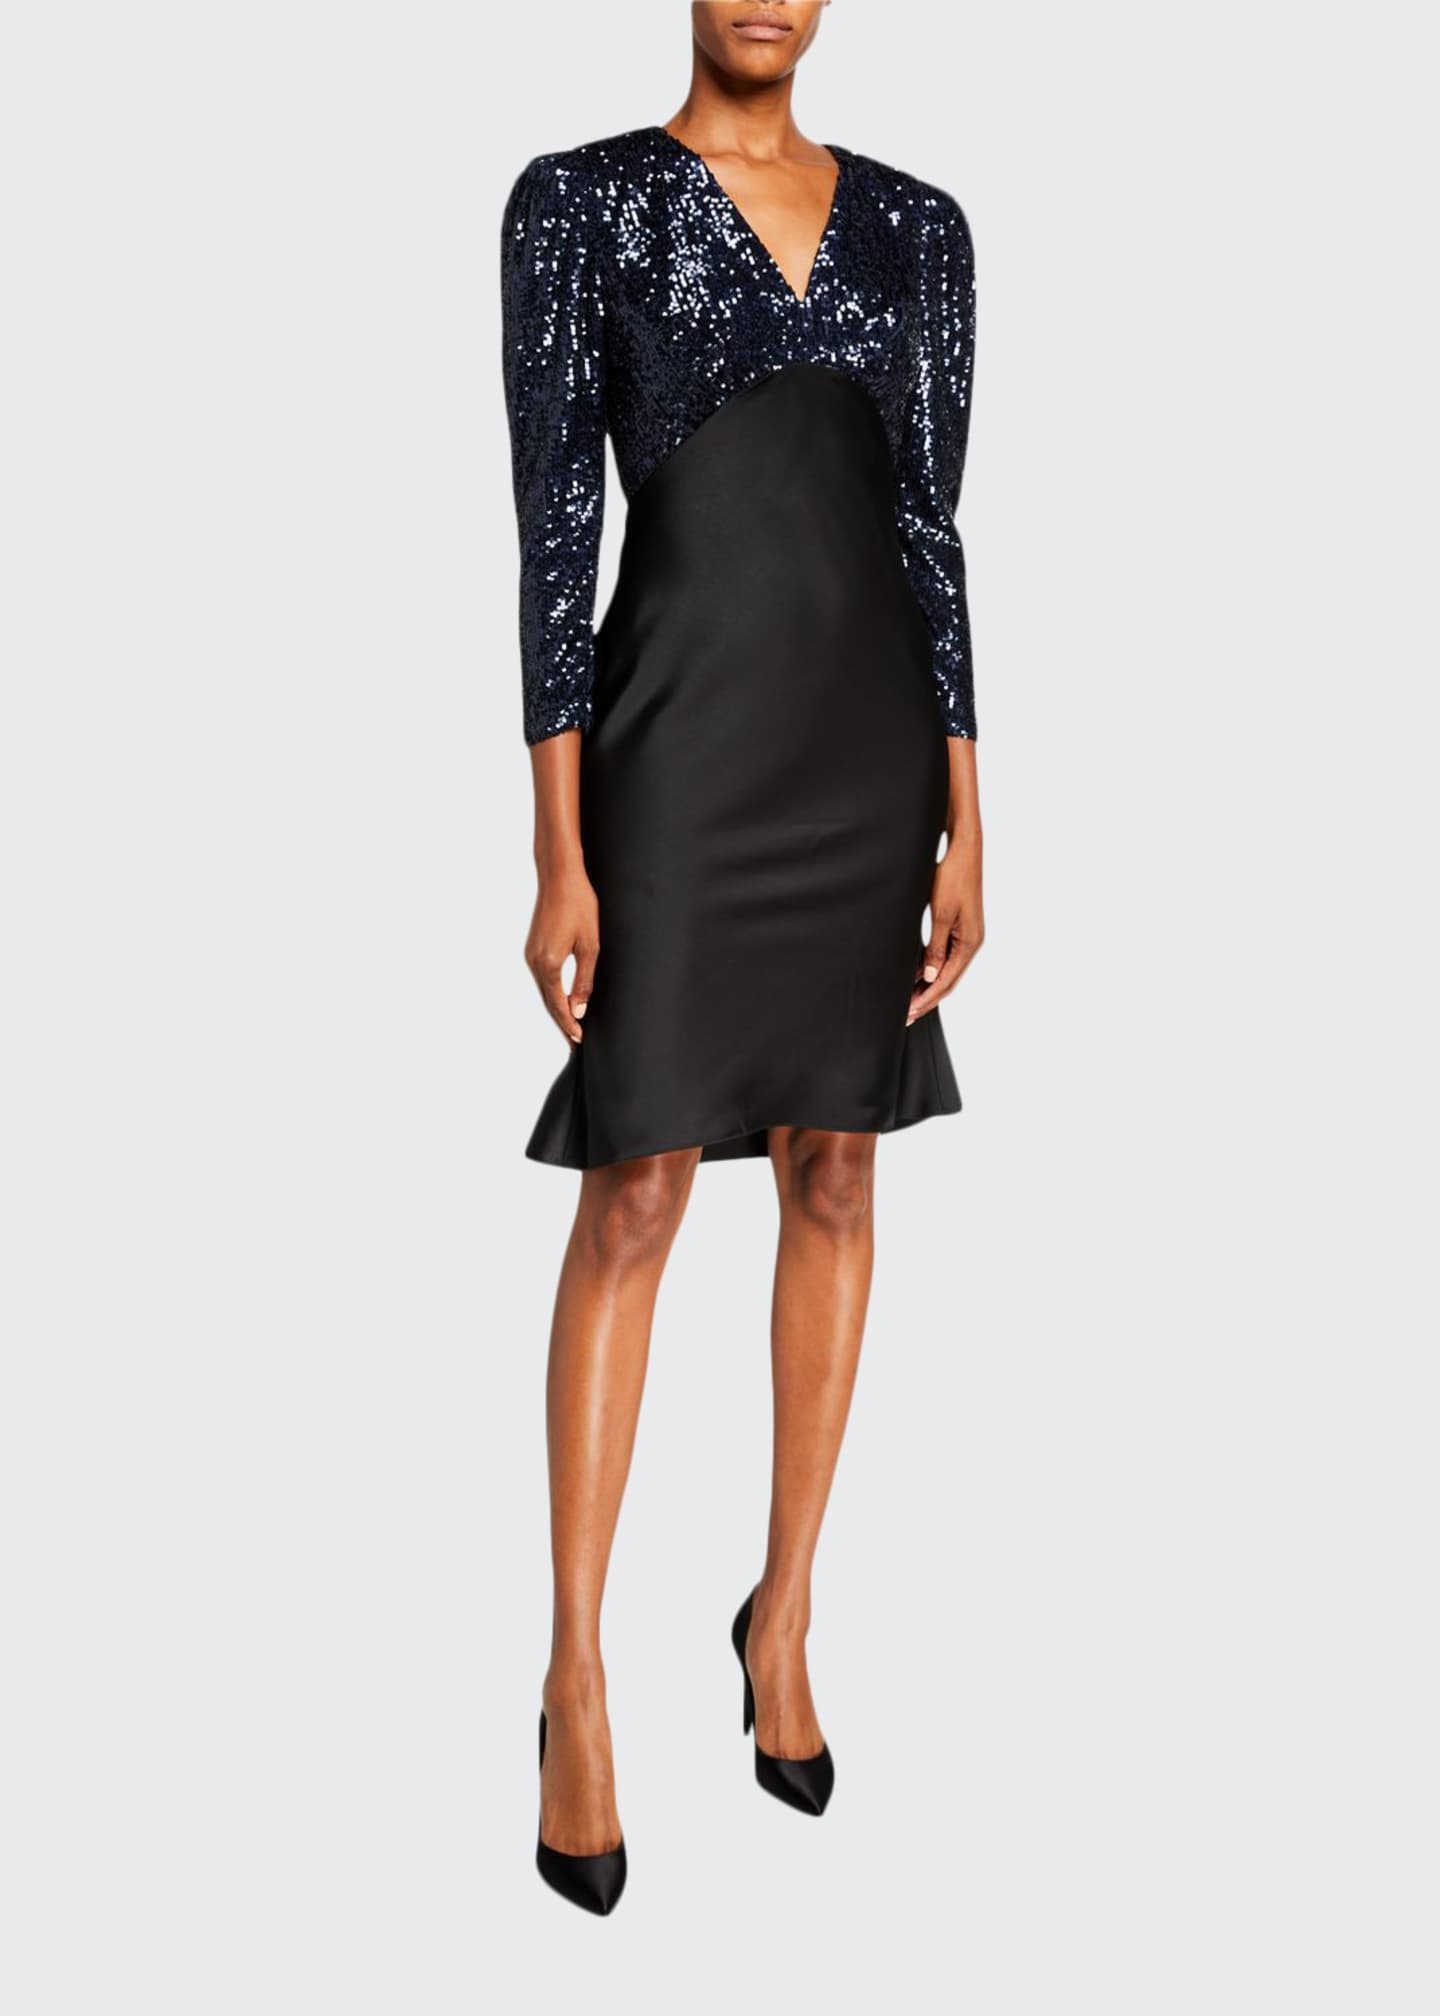 Sachin & Babi Louisa Sequin Bodice V-Neck Mutton